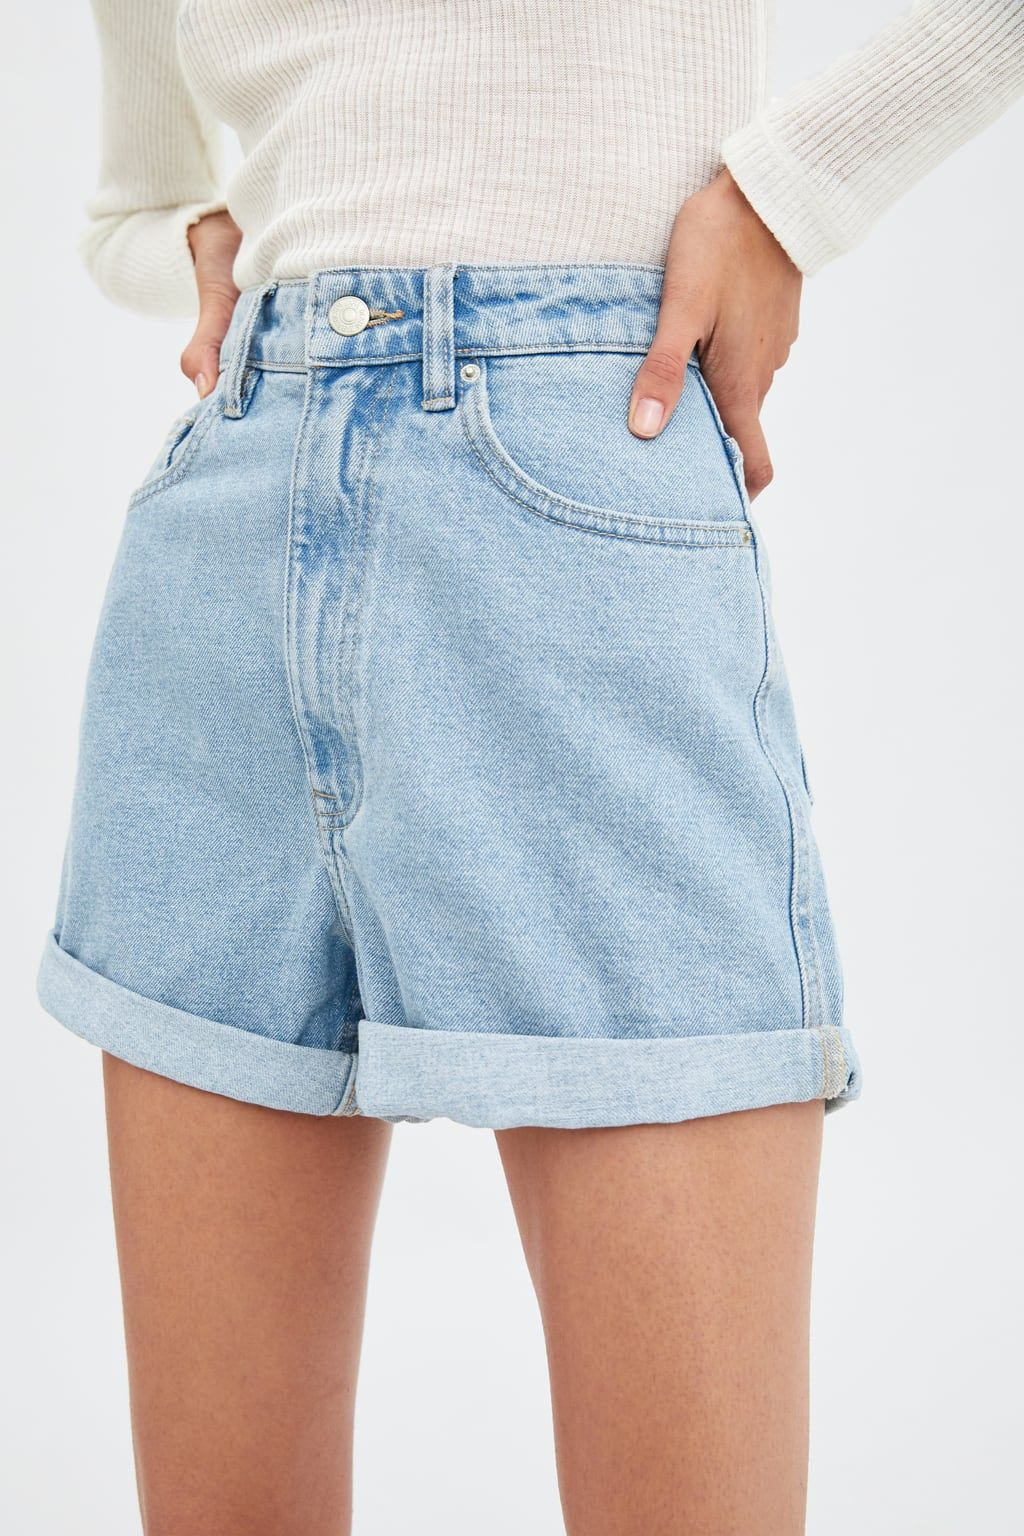 b7cfec96 AUTHENTIC DENIM MOM FIT SHORTS - Natural fibers-PRODUCT-JOIN LIFE | ZARA  United States